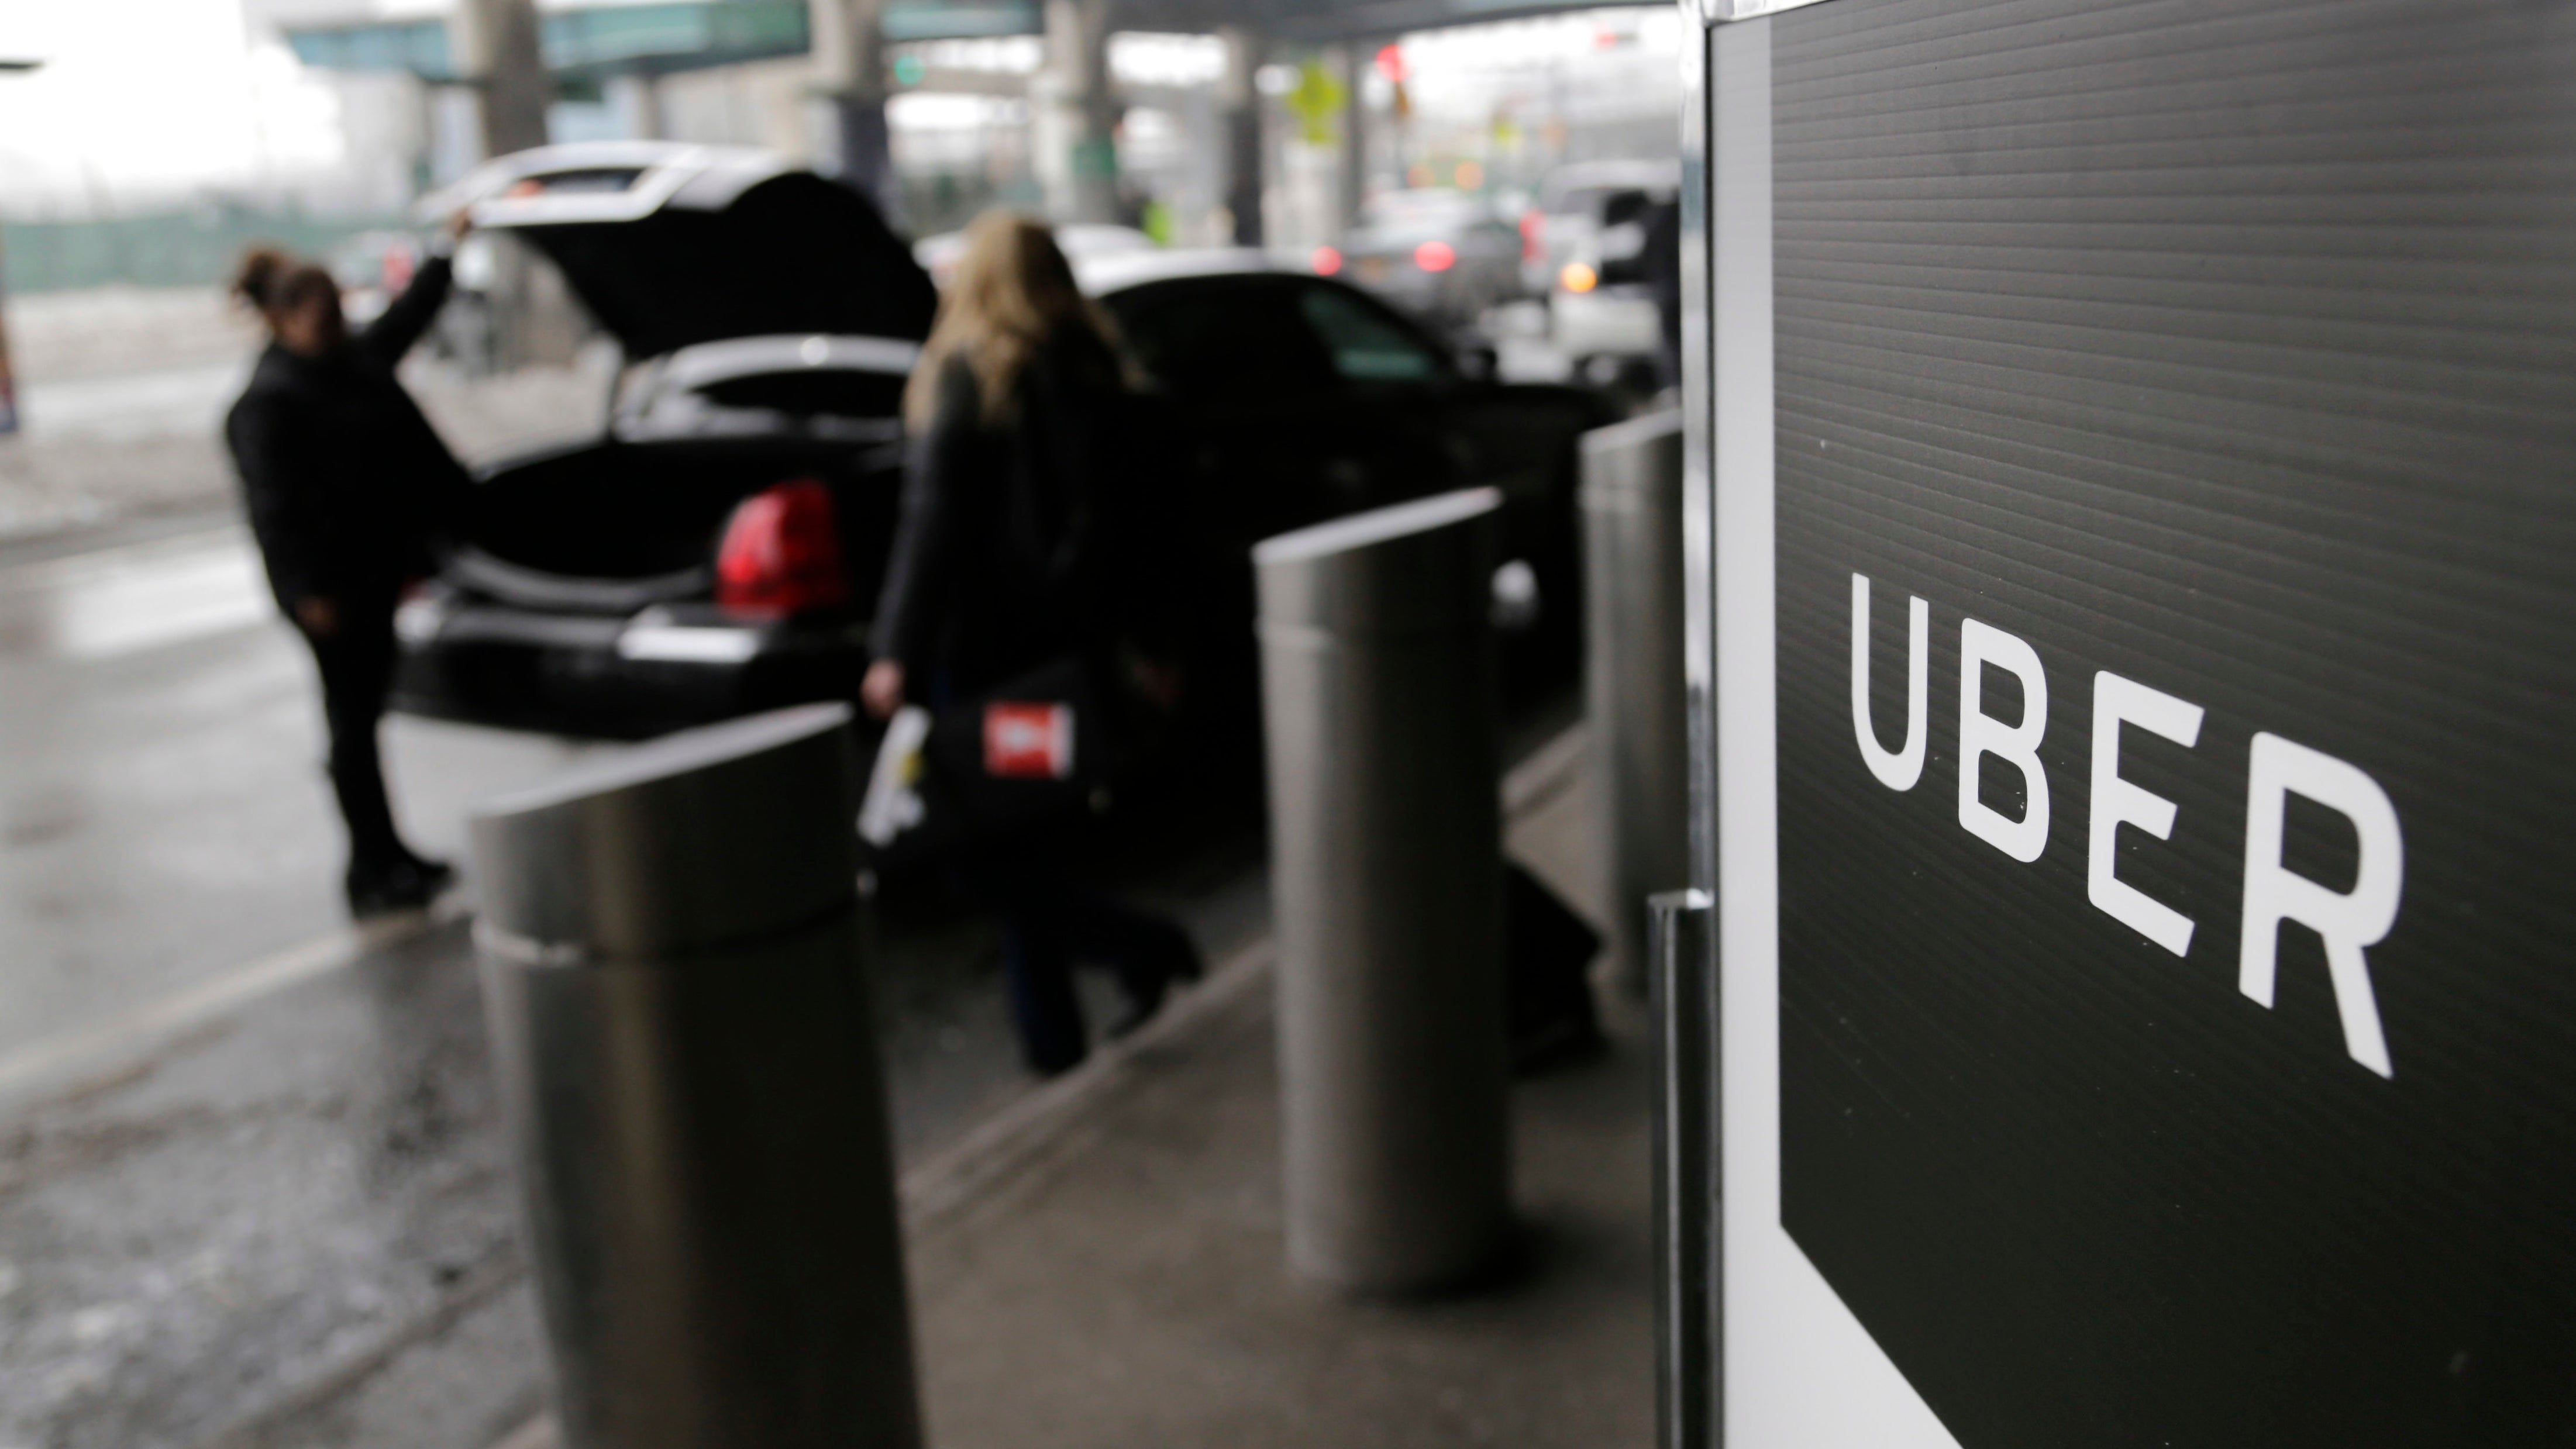 Lawsuit: Over 99% Of Uber's NYC Cars Inaccessible To People With Disabilities